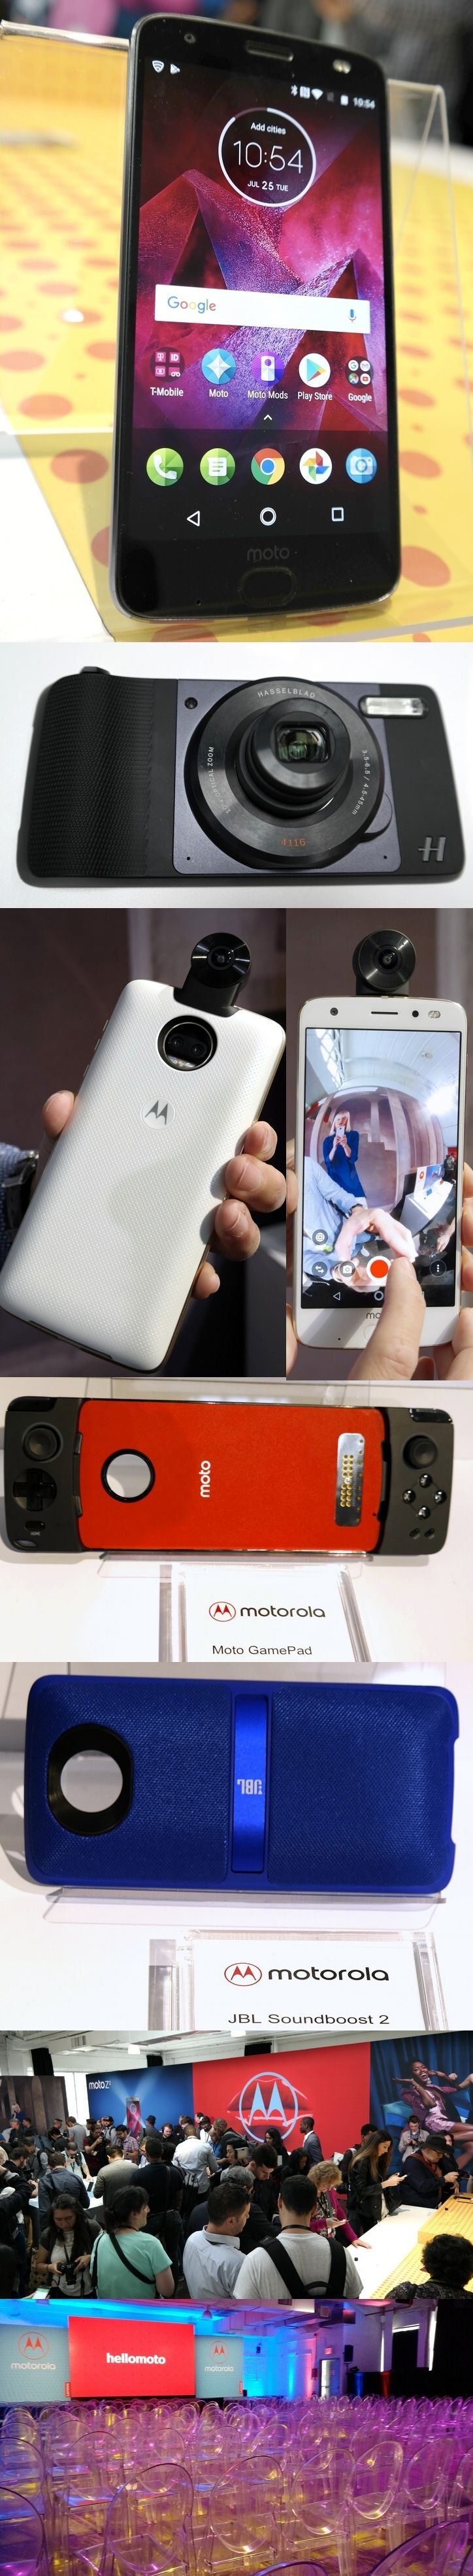 Motorola's mod, mod, mod, mod world: The modular Moto Z2 Force Android smartphone converts to a full-function Hasselblad True Zoom camera, 360-degree camera, projector, game controller or JBL boombox with the magnetic snap of an optional Moto Mod accessory back. Motorola guarantees the 5.5-inch Quad HD screen will never crack. The water-repellent Moto z2 Force ($720 or $30/mo.) has twin 12MP rear cameras, an extra-wide fingerprint sensor and Qualcomm's powerful Snapdragon 835 processor.